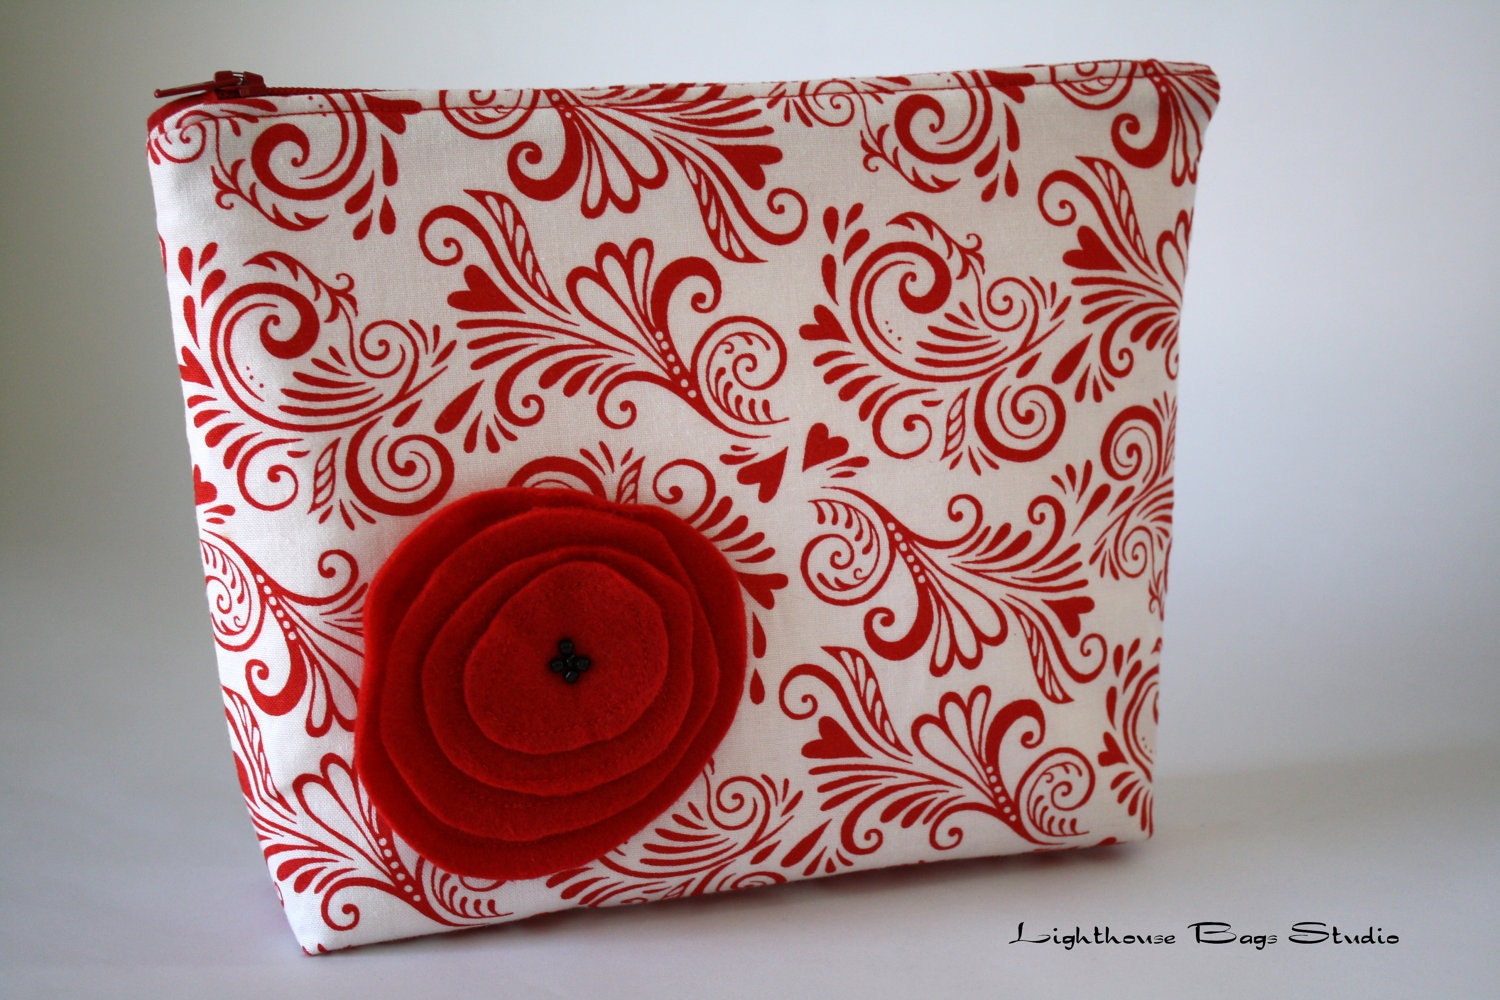 Wristlet Pouch w/ zipper - White Chocolate Swirls of Love Fabric - Lighthousebags